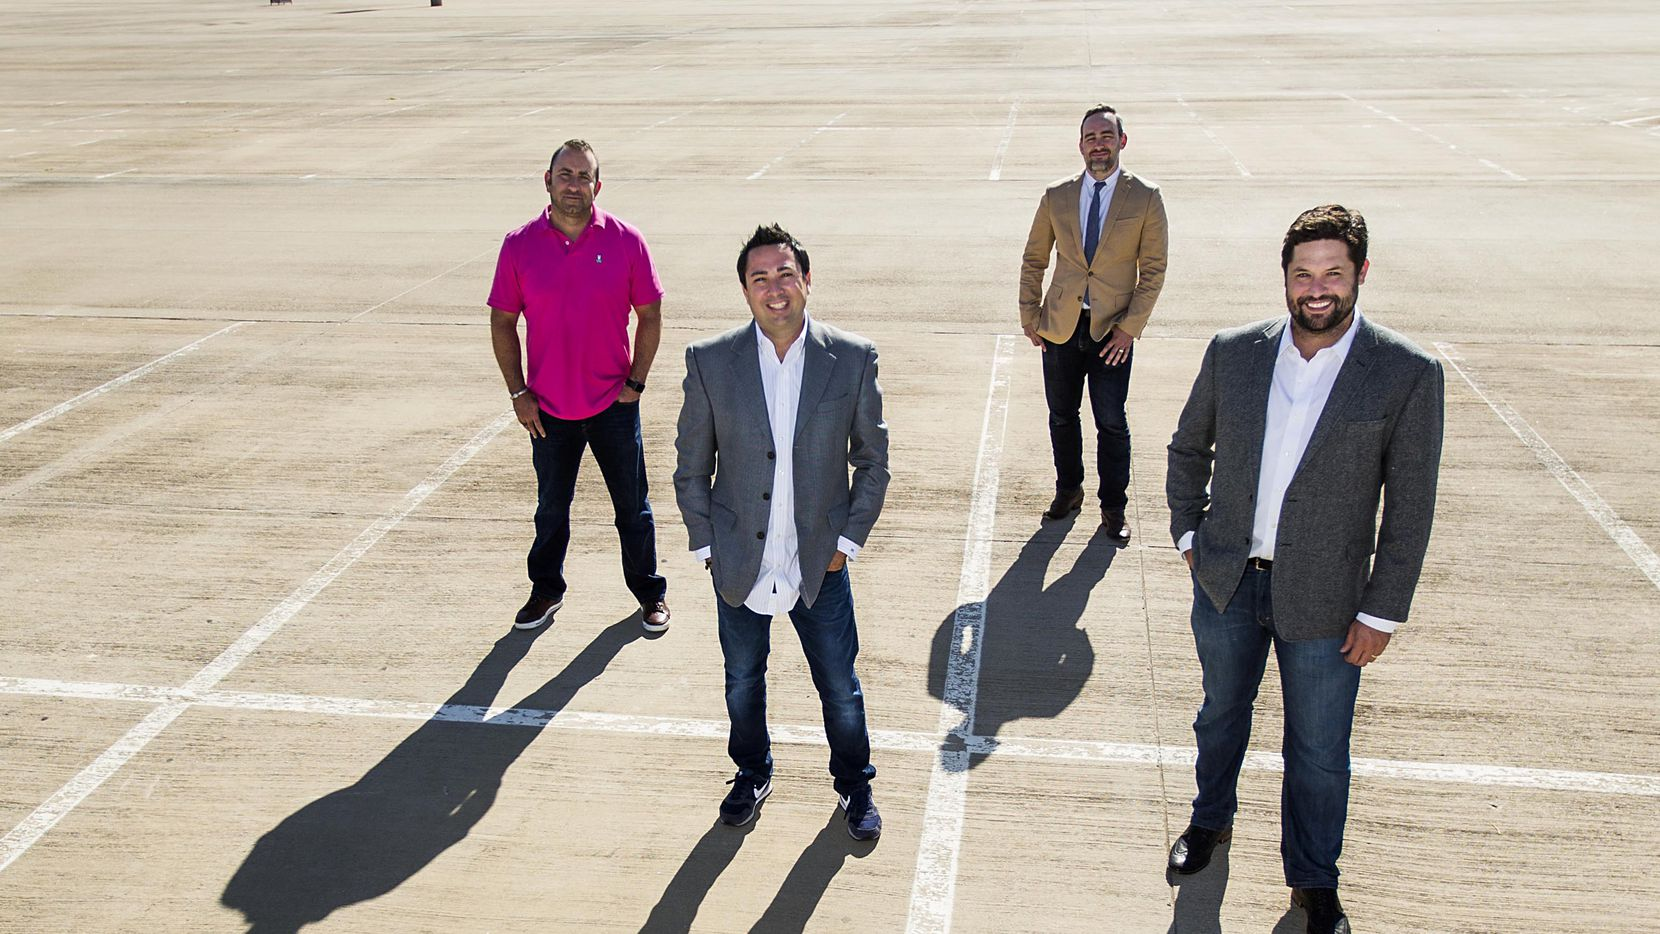 ParkHub leaders, from left, Tony Albanese, President & CRO, George Baker, Founder & CEO, Dave Livingston, CTO, and Jake Edsell, COO, gather for a group picture in the lot at AT&T Stadium on Tuesday, Oct. 11, 2016, in Arlington, Texas.  (Smiley N. Pool/The Dallas Morning News)